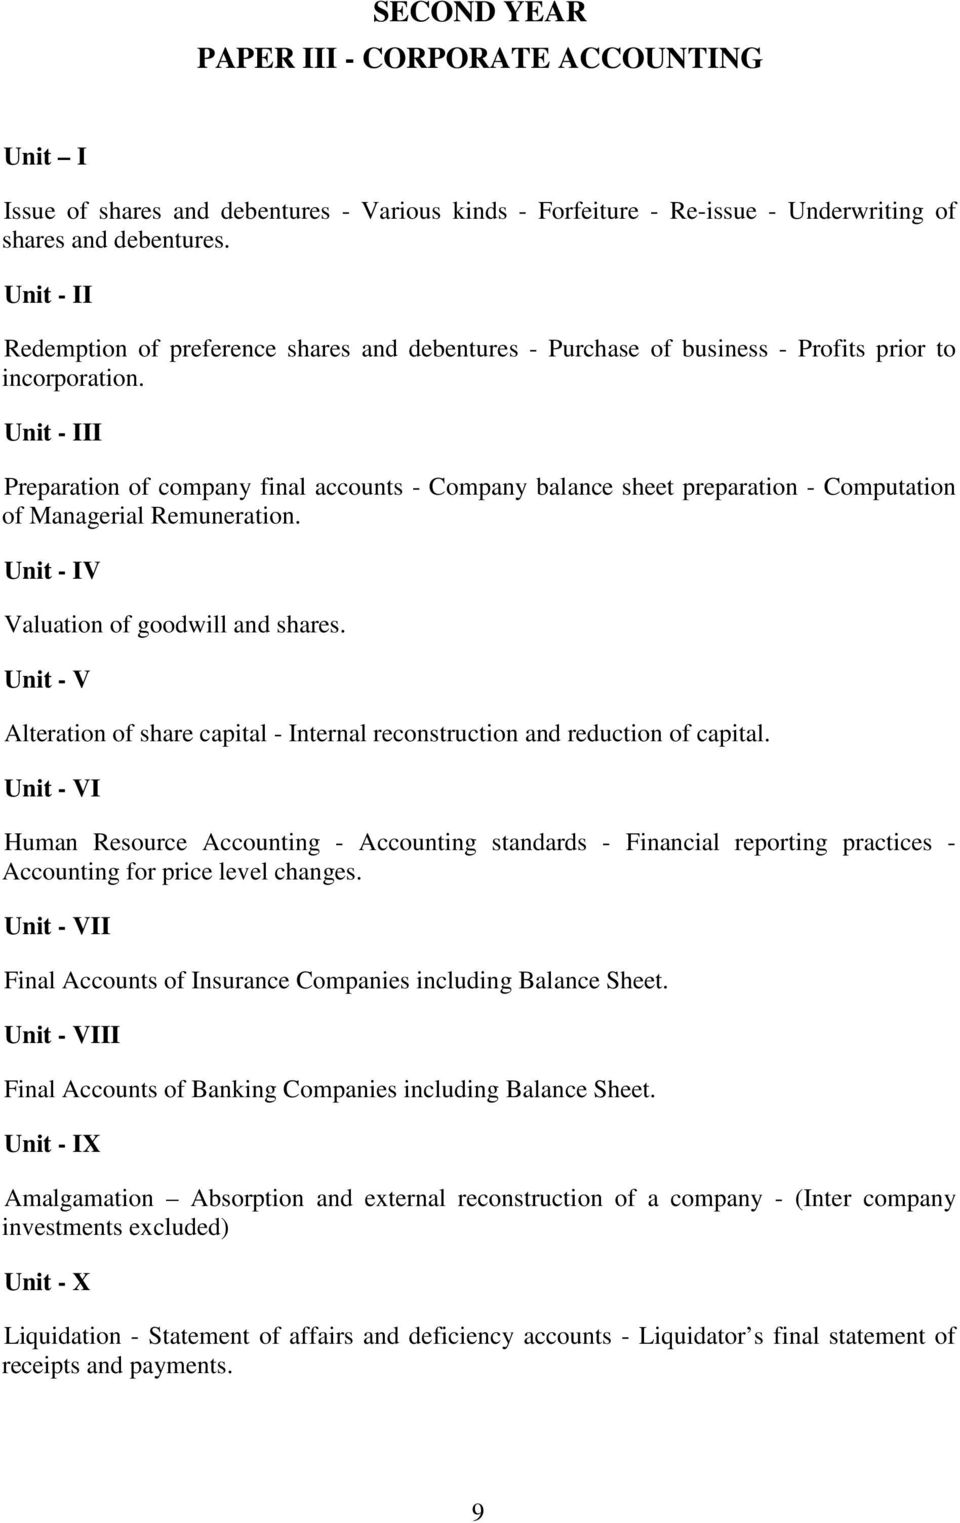 Unit - III Preparation of company final accounts - Company balance sheet preparation - Computation of Managerial Remuneration. Unit - IV Valuation of goodwill and shares.